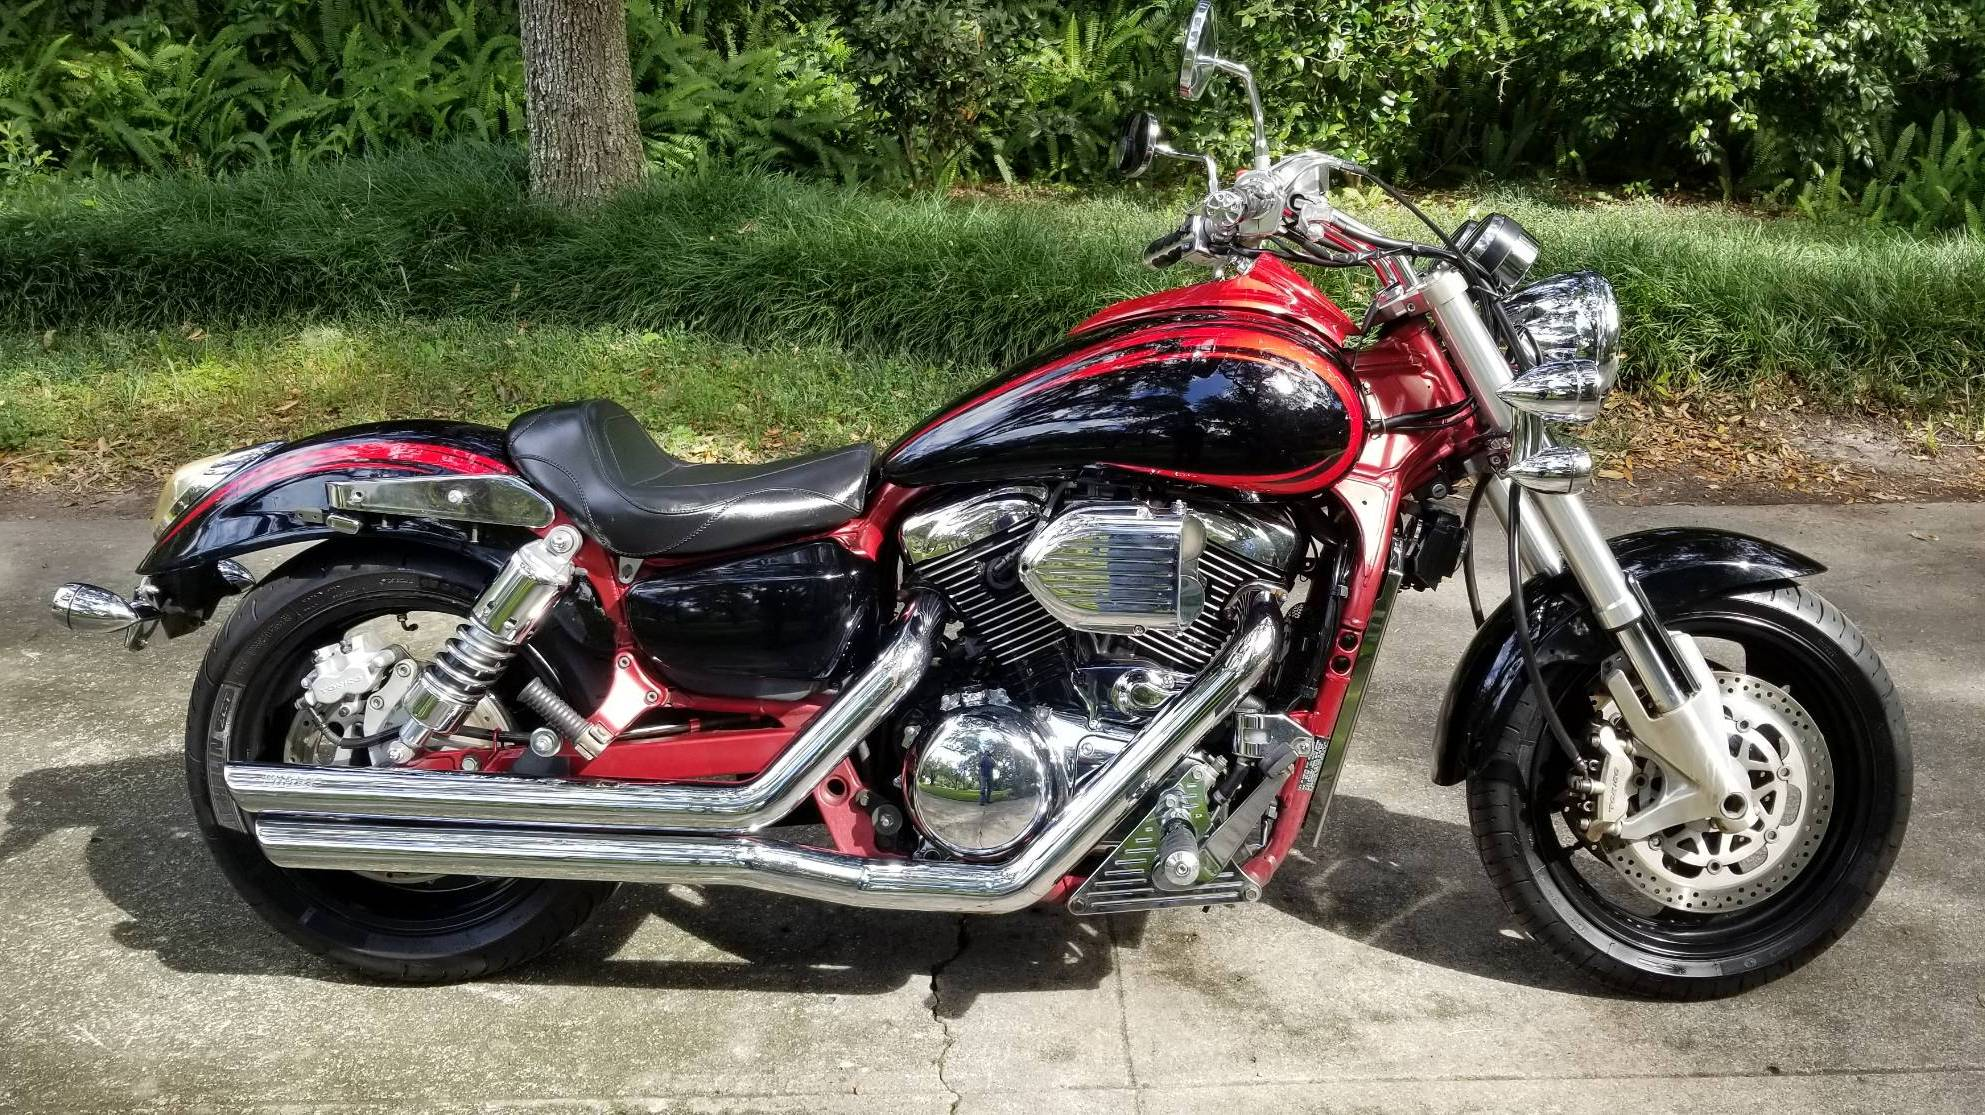 Kawasaki Vulcan 1600 Mean Streak For Rent Near Gainesville Fl